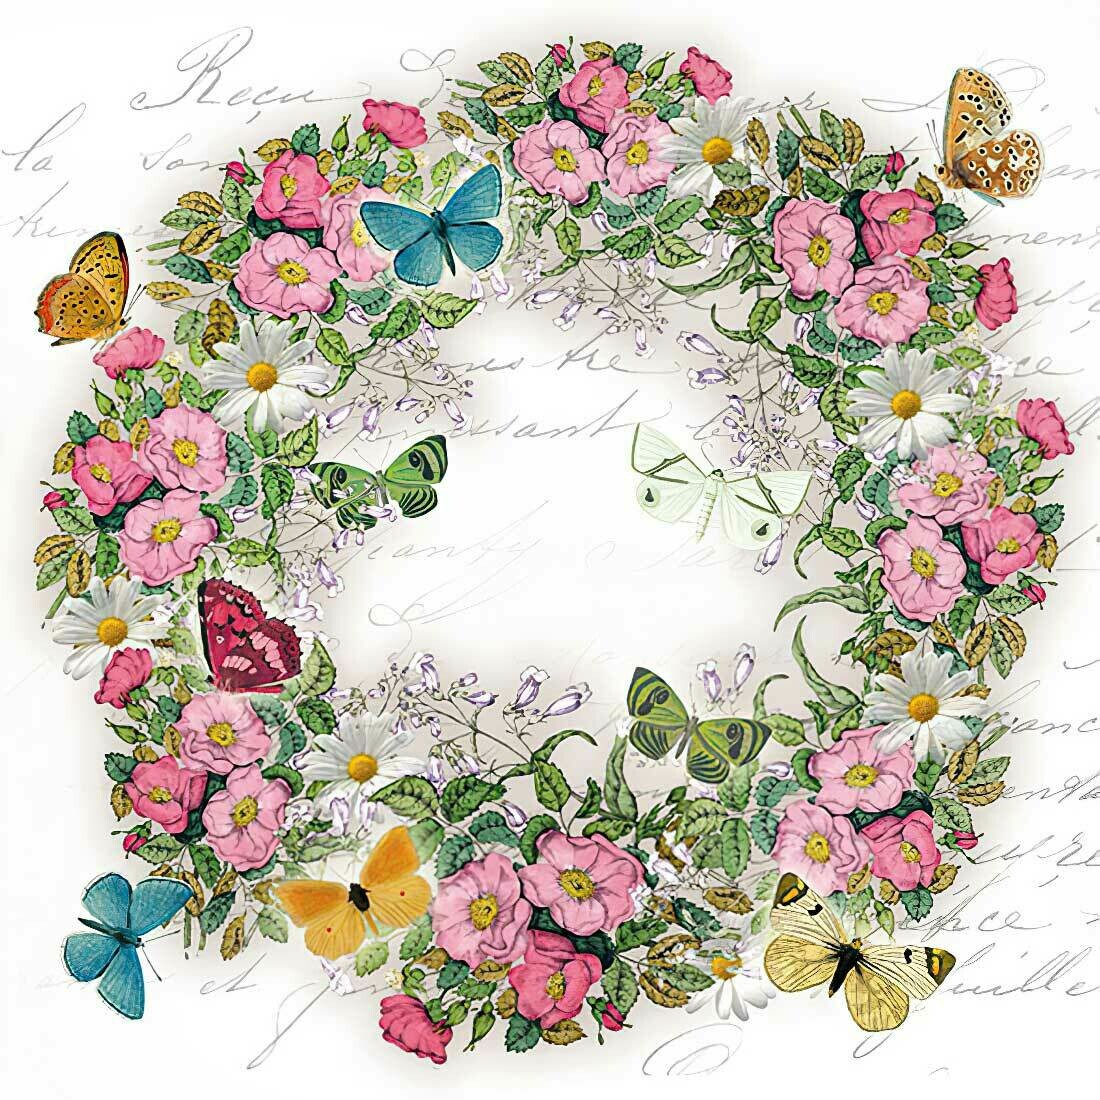 Decoupage Paper Napkins - Floral - Wreath of Flowers with Butterflies 13x13 (1 Sheet)